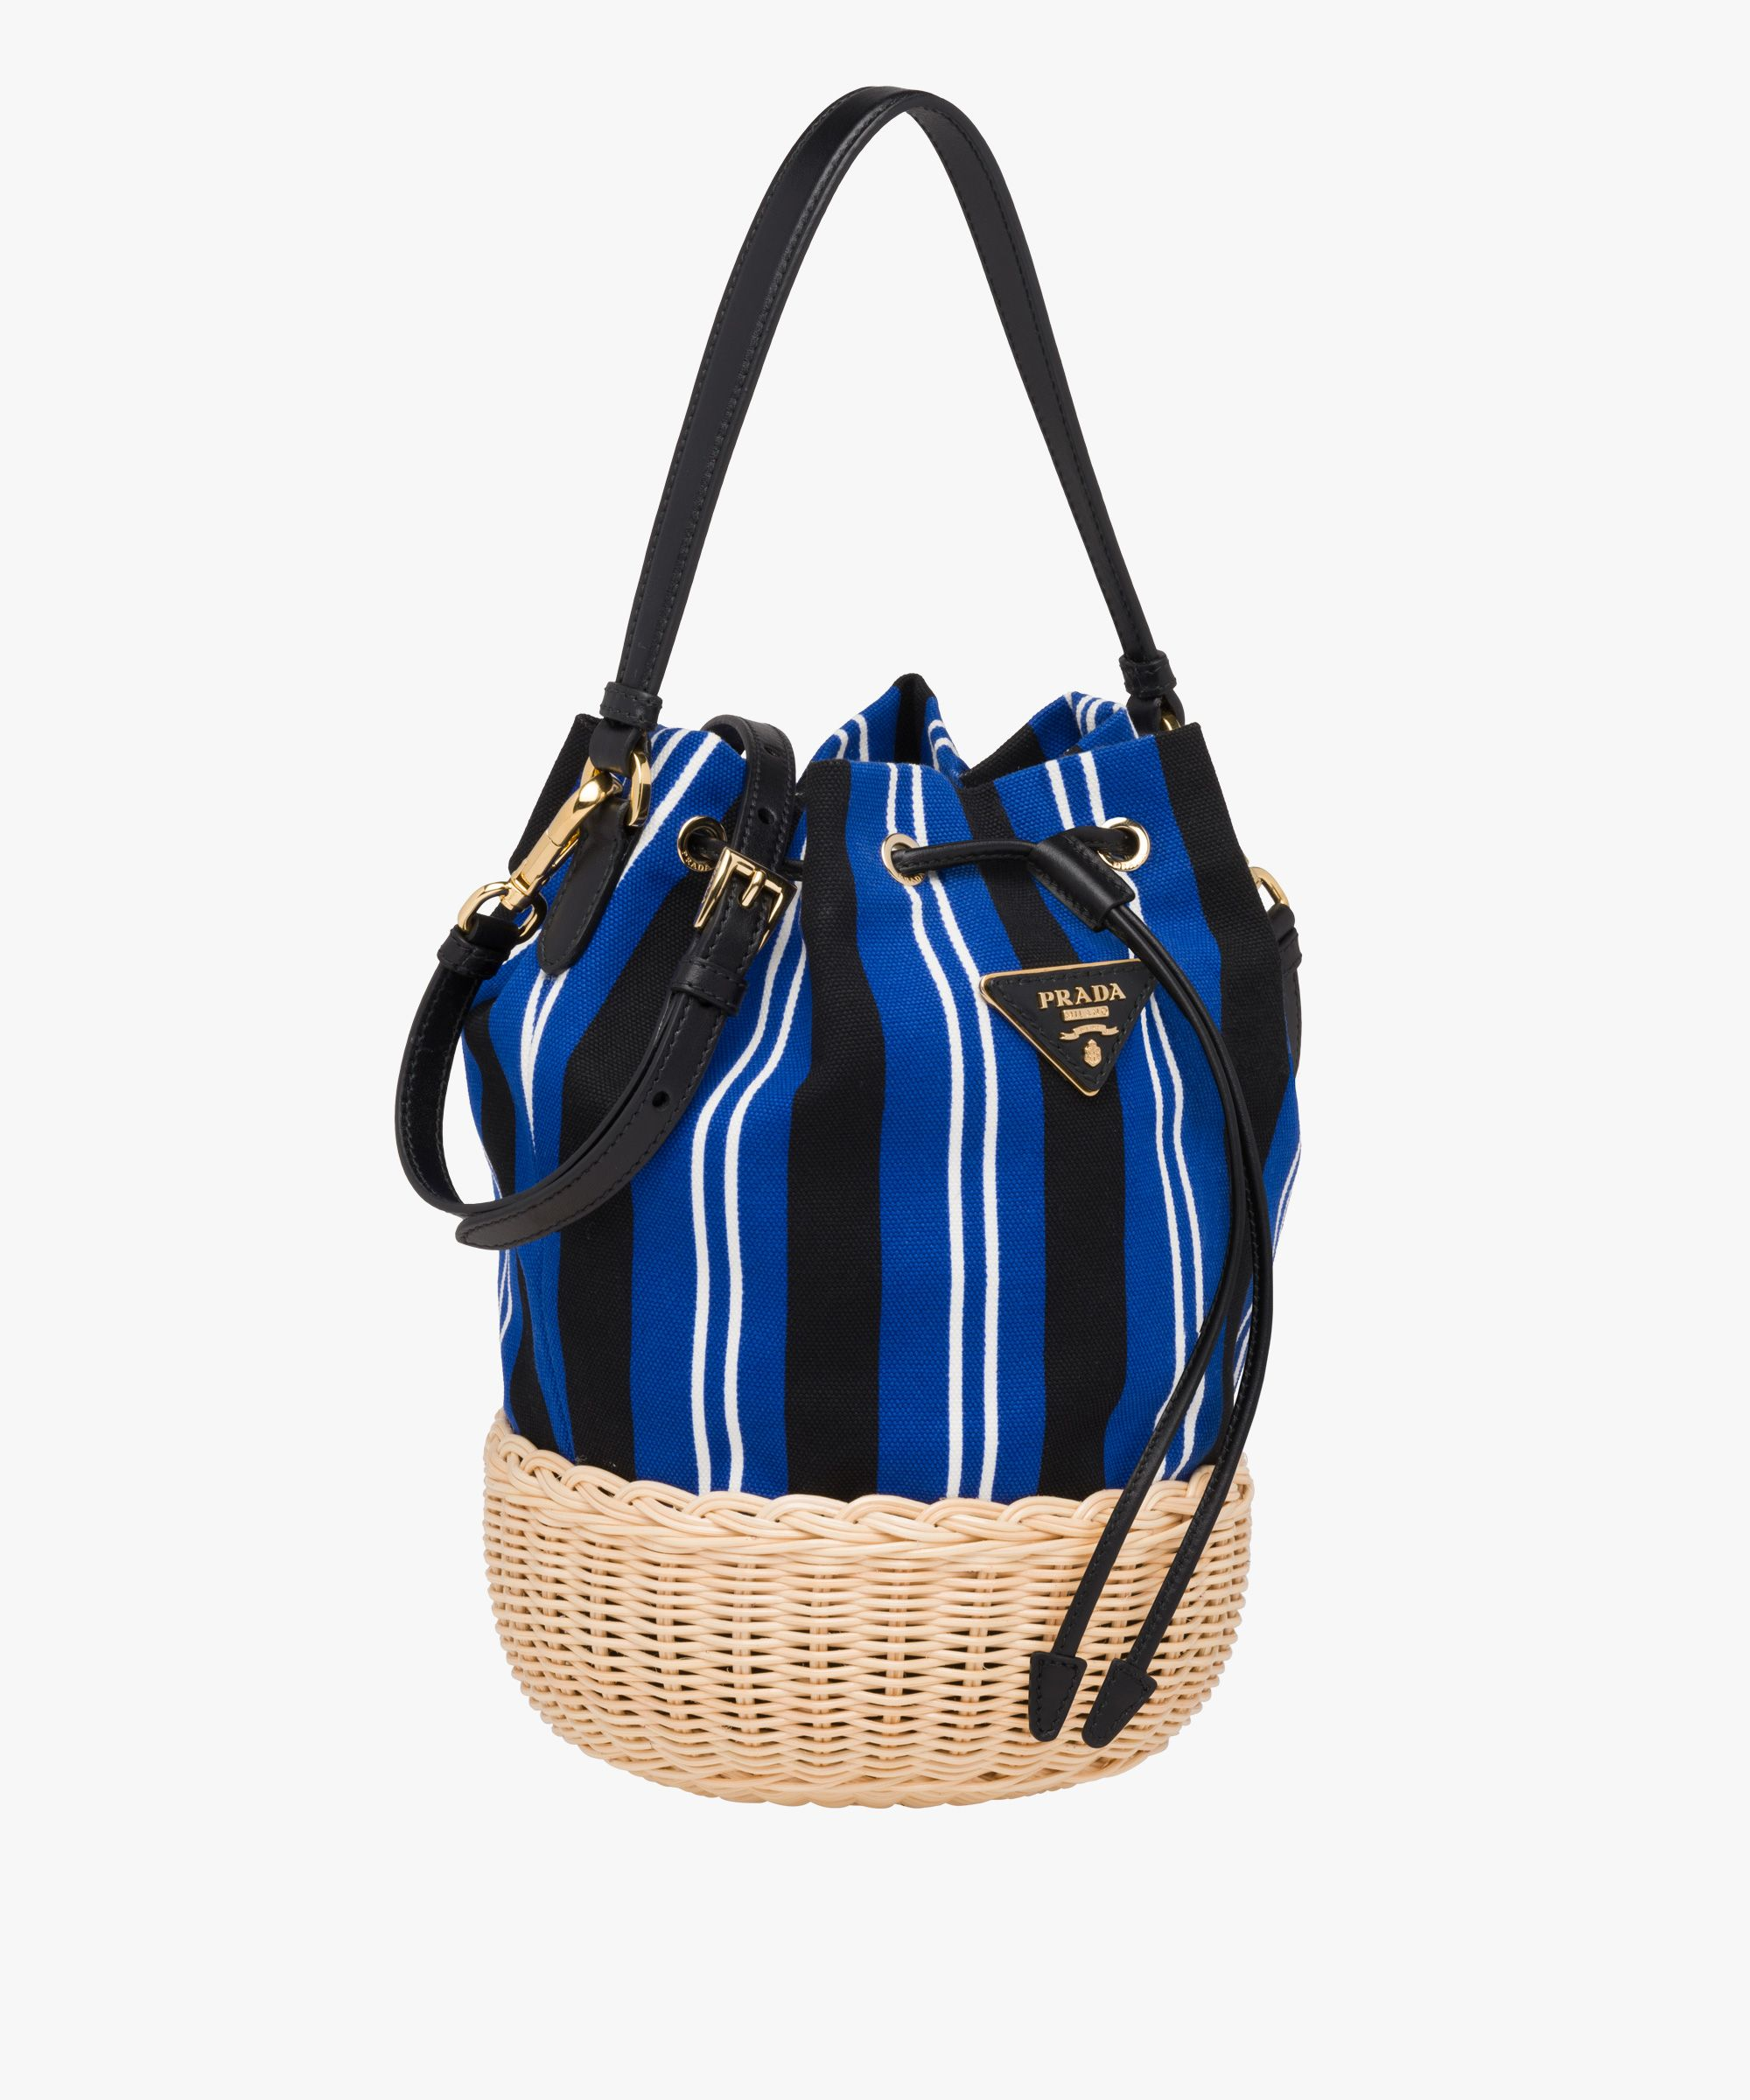 10b27b85f5381b Prada - Wicker & striped canvas shoulder bag | BAGS in 2019 | Bags ...